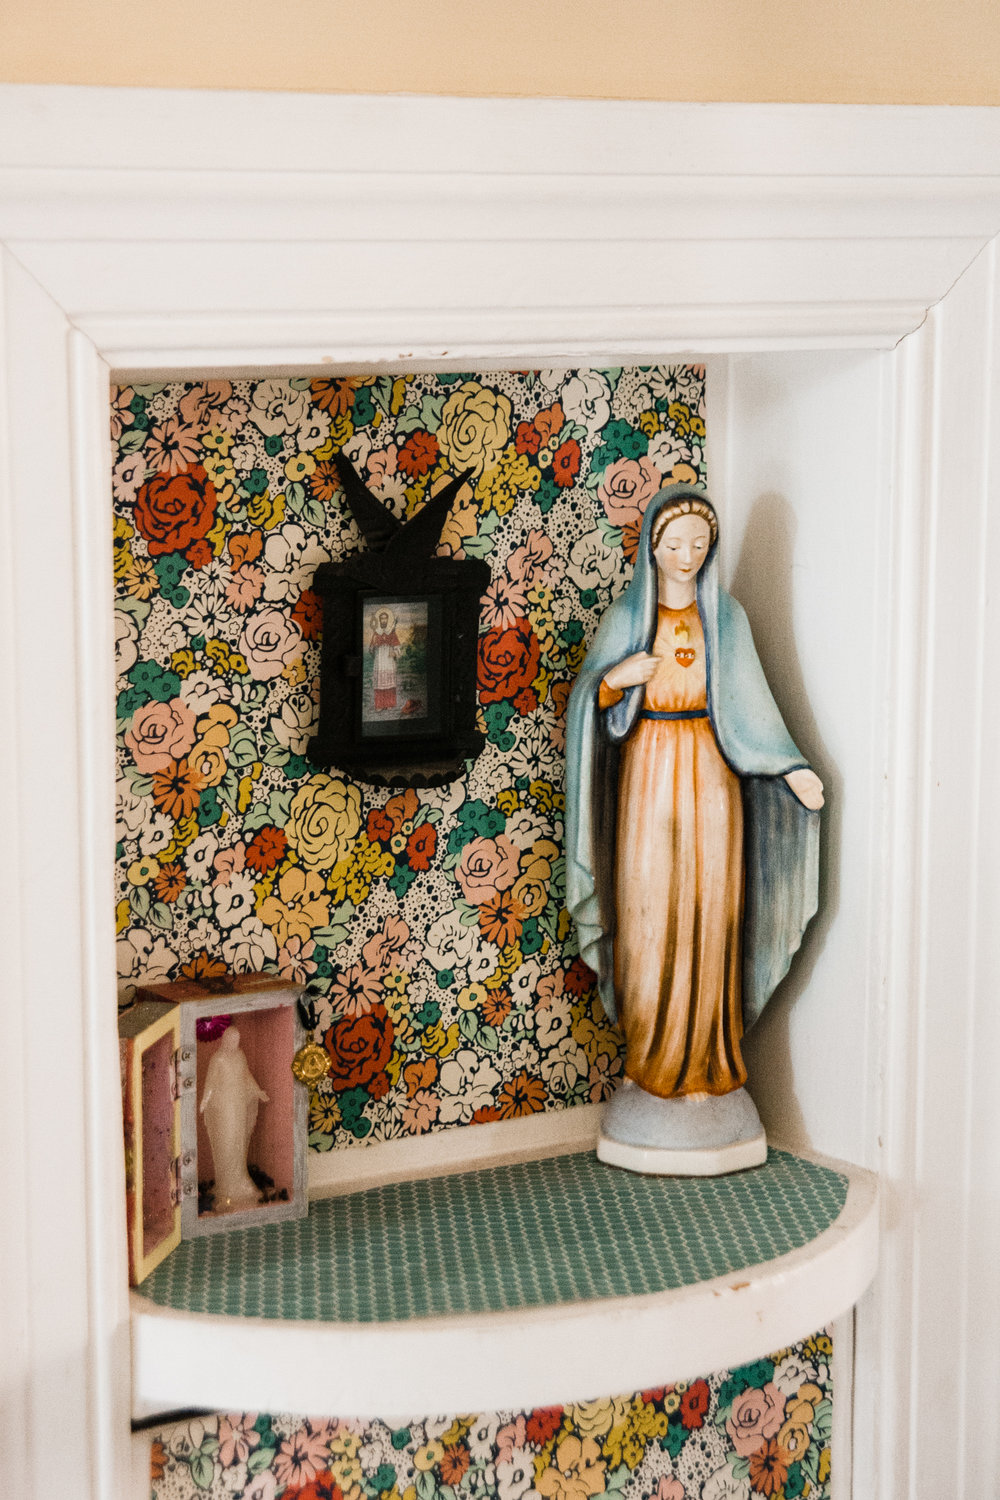 Allison installed beautiful paper in this small hallway nook.